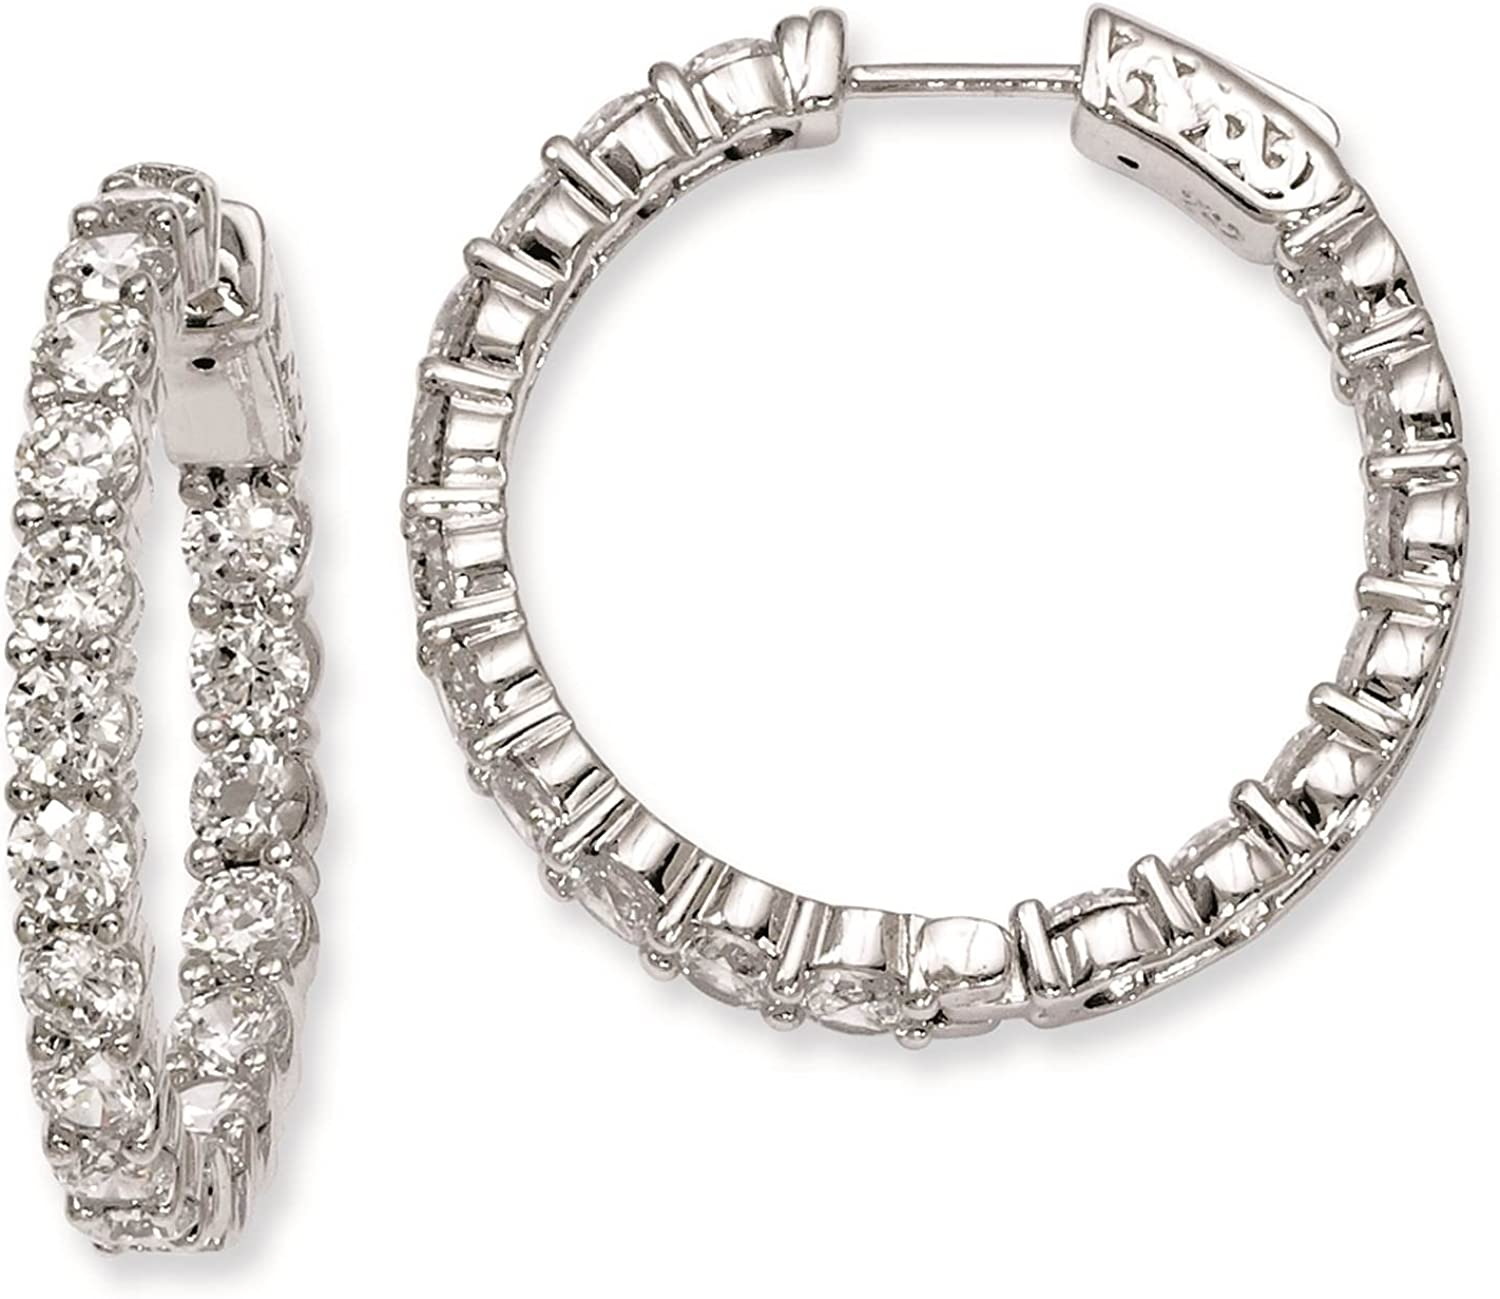 925 Sterling Silver Rhodium-plated Polished CZ In /& Out Hoop Earrings 4mm x 28mm by 925 Sterling Shimmer